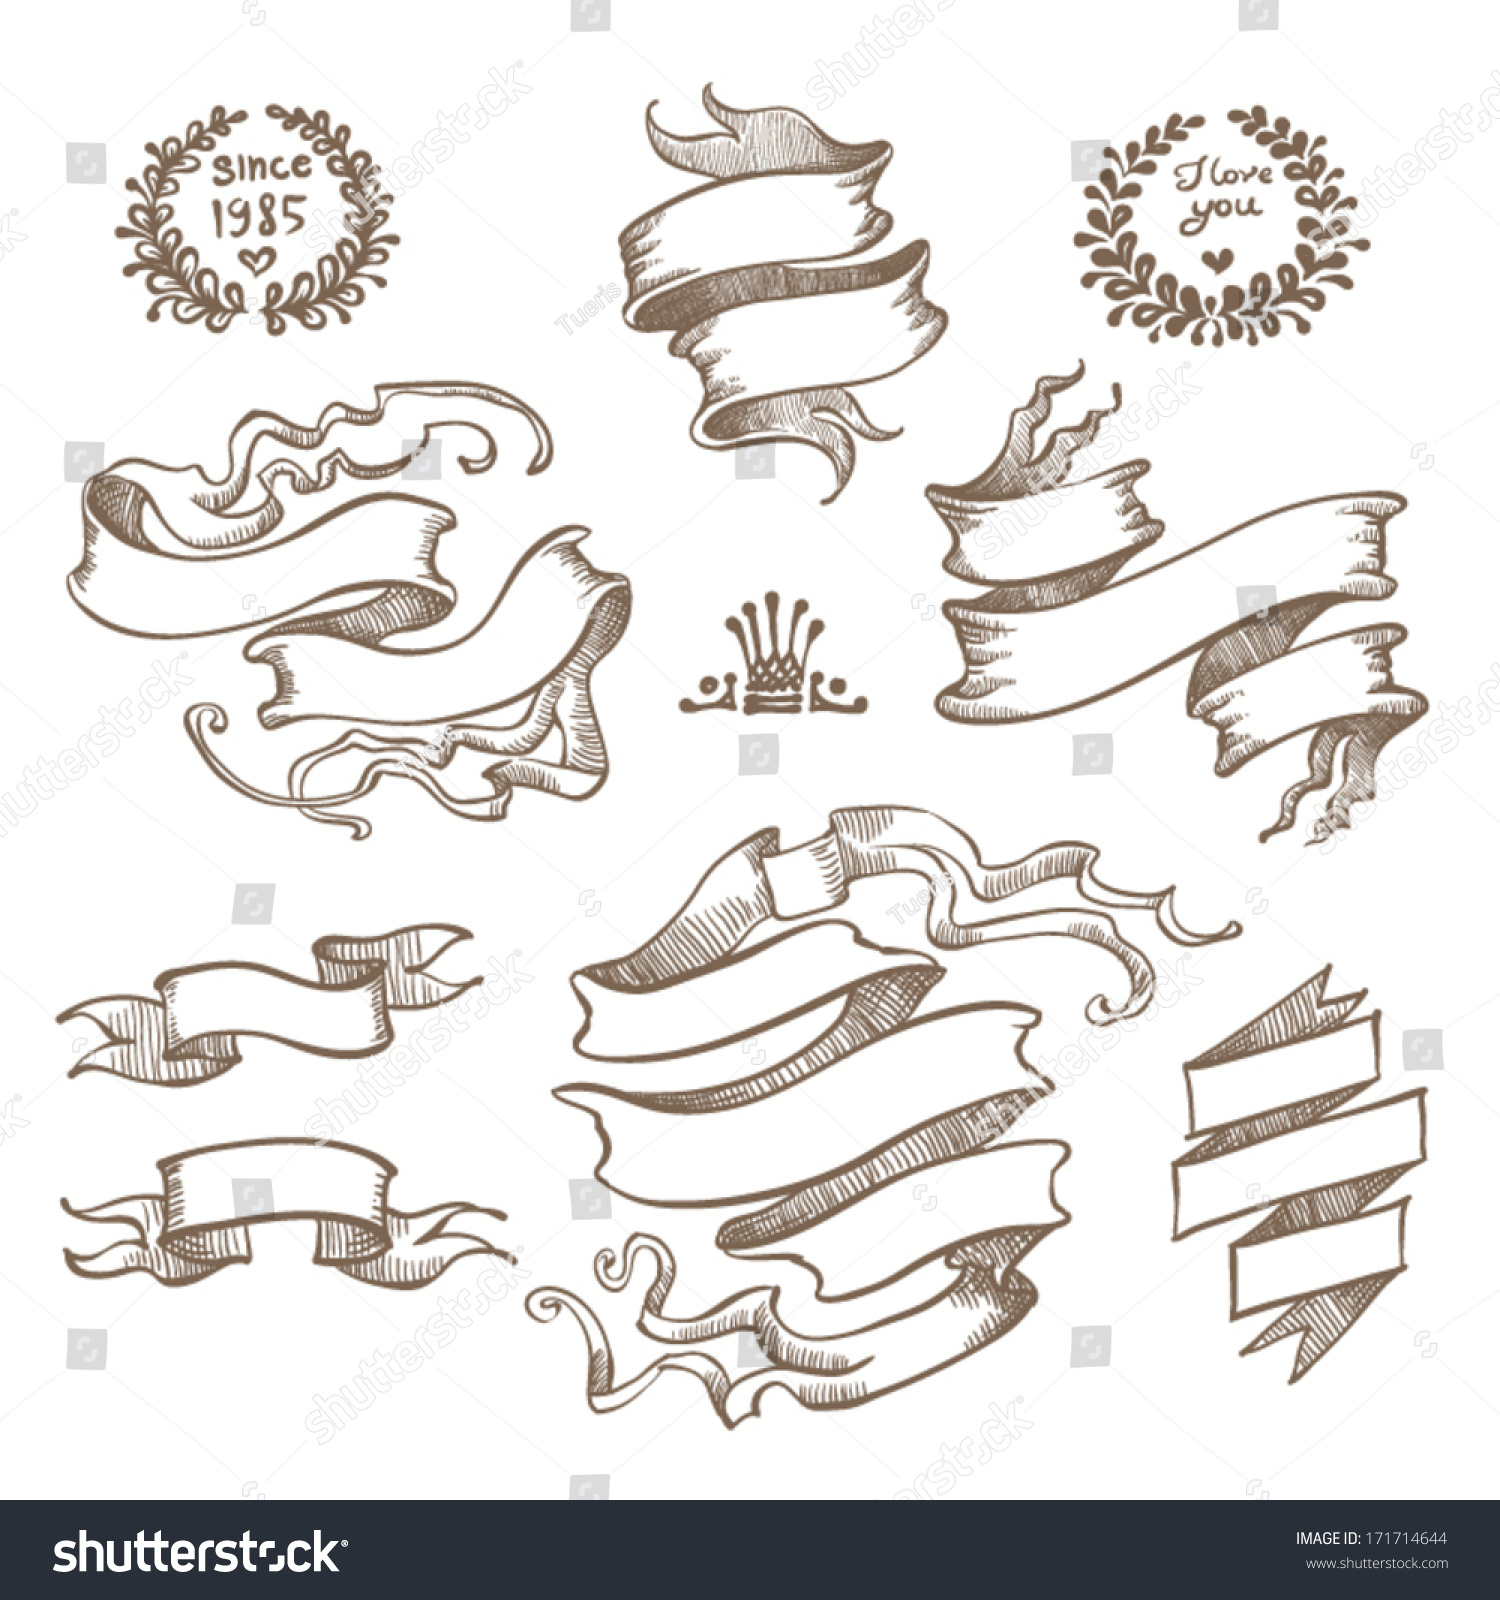 Vintage Scroll Banner Stock Images, Royalty-Free Images ...